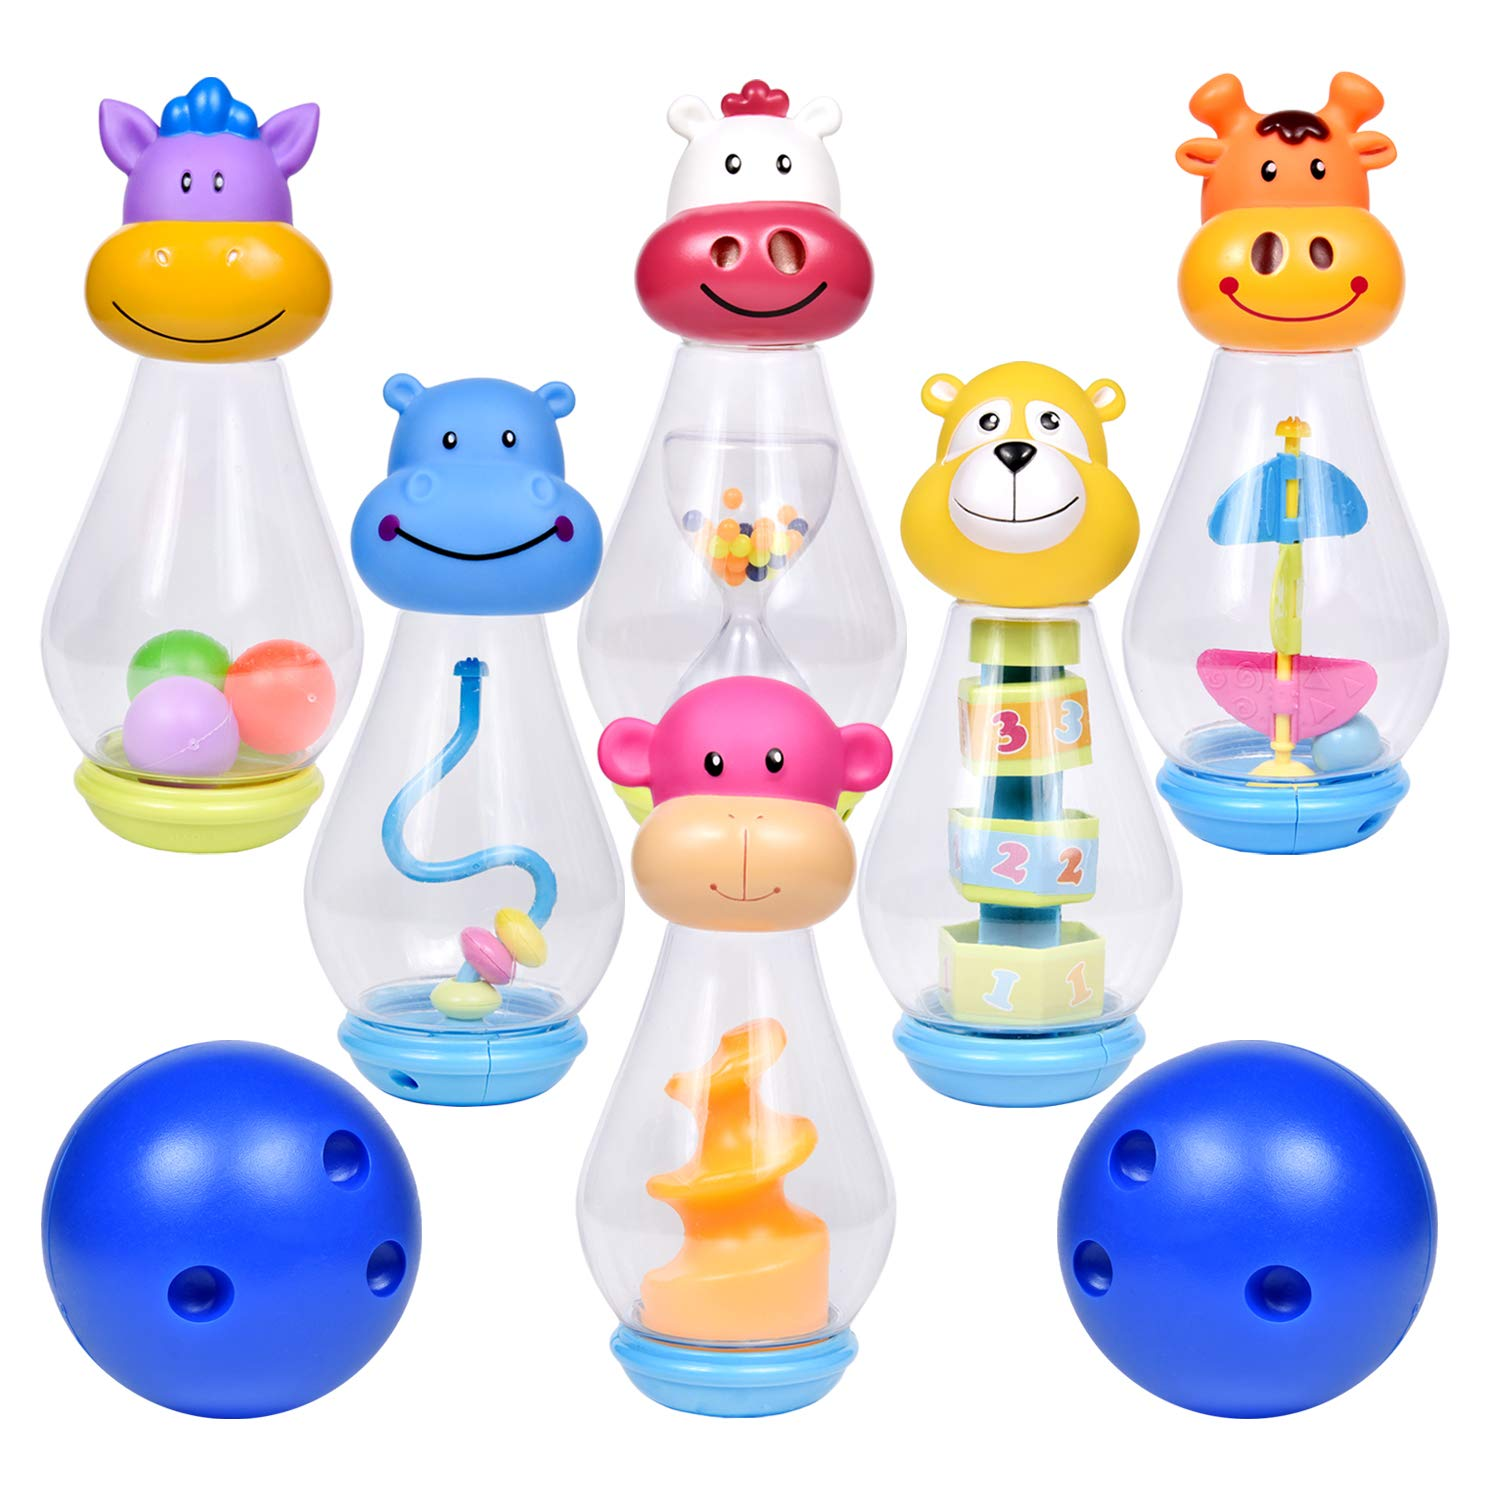 Bowling Set for Toddlers with 6 Animal Head Bowling Pins and 2 Bowling Balls, Toddler Outdoor Toys, Bowling Game for Kids by FUN LITTLE TOYS (Image #1)